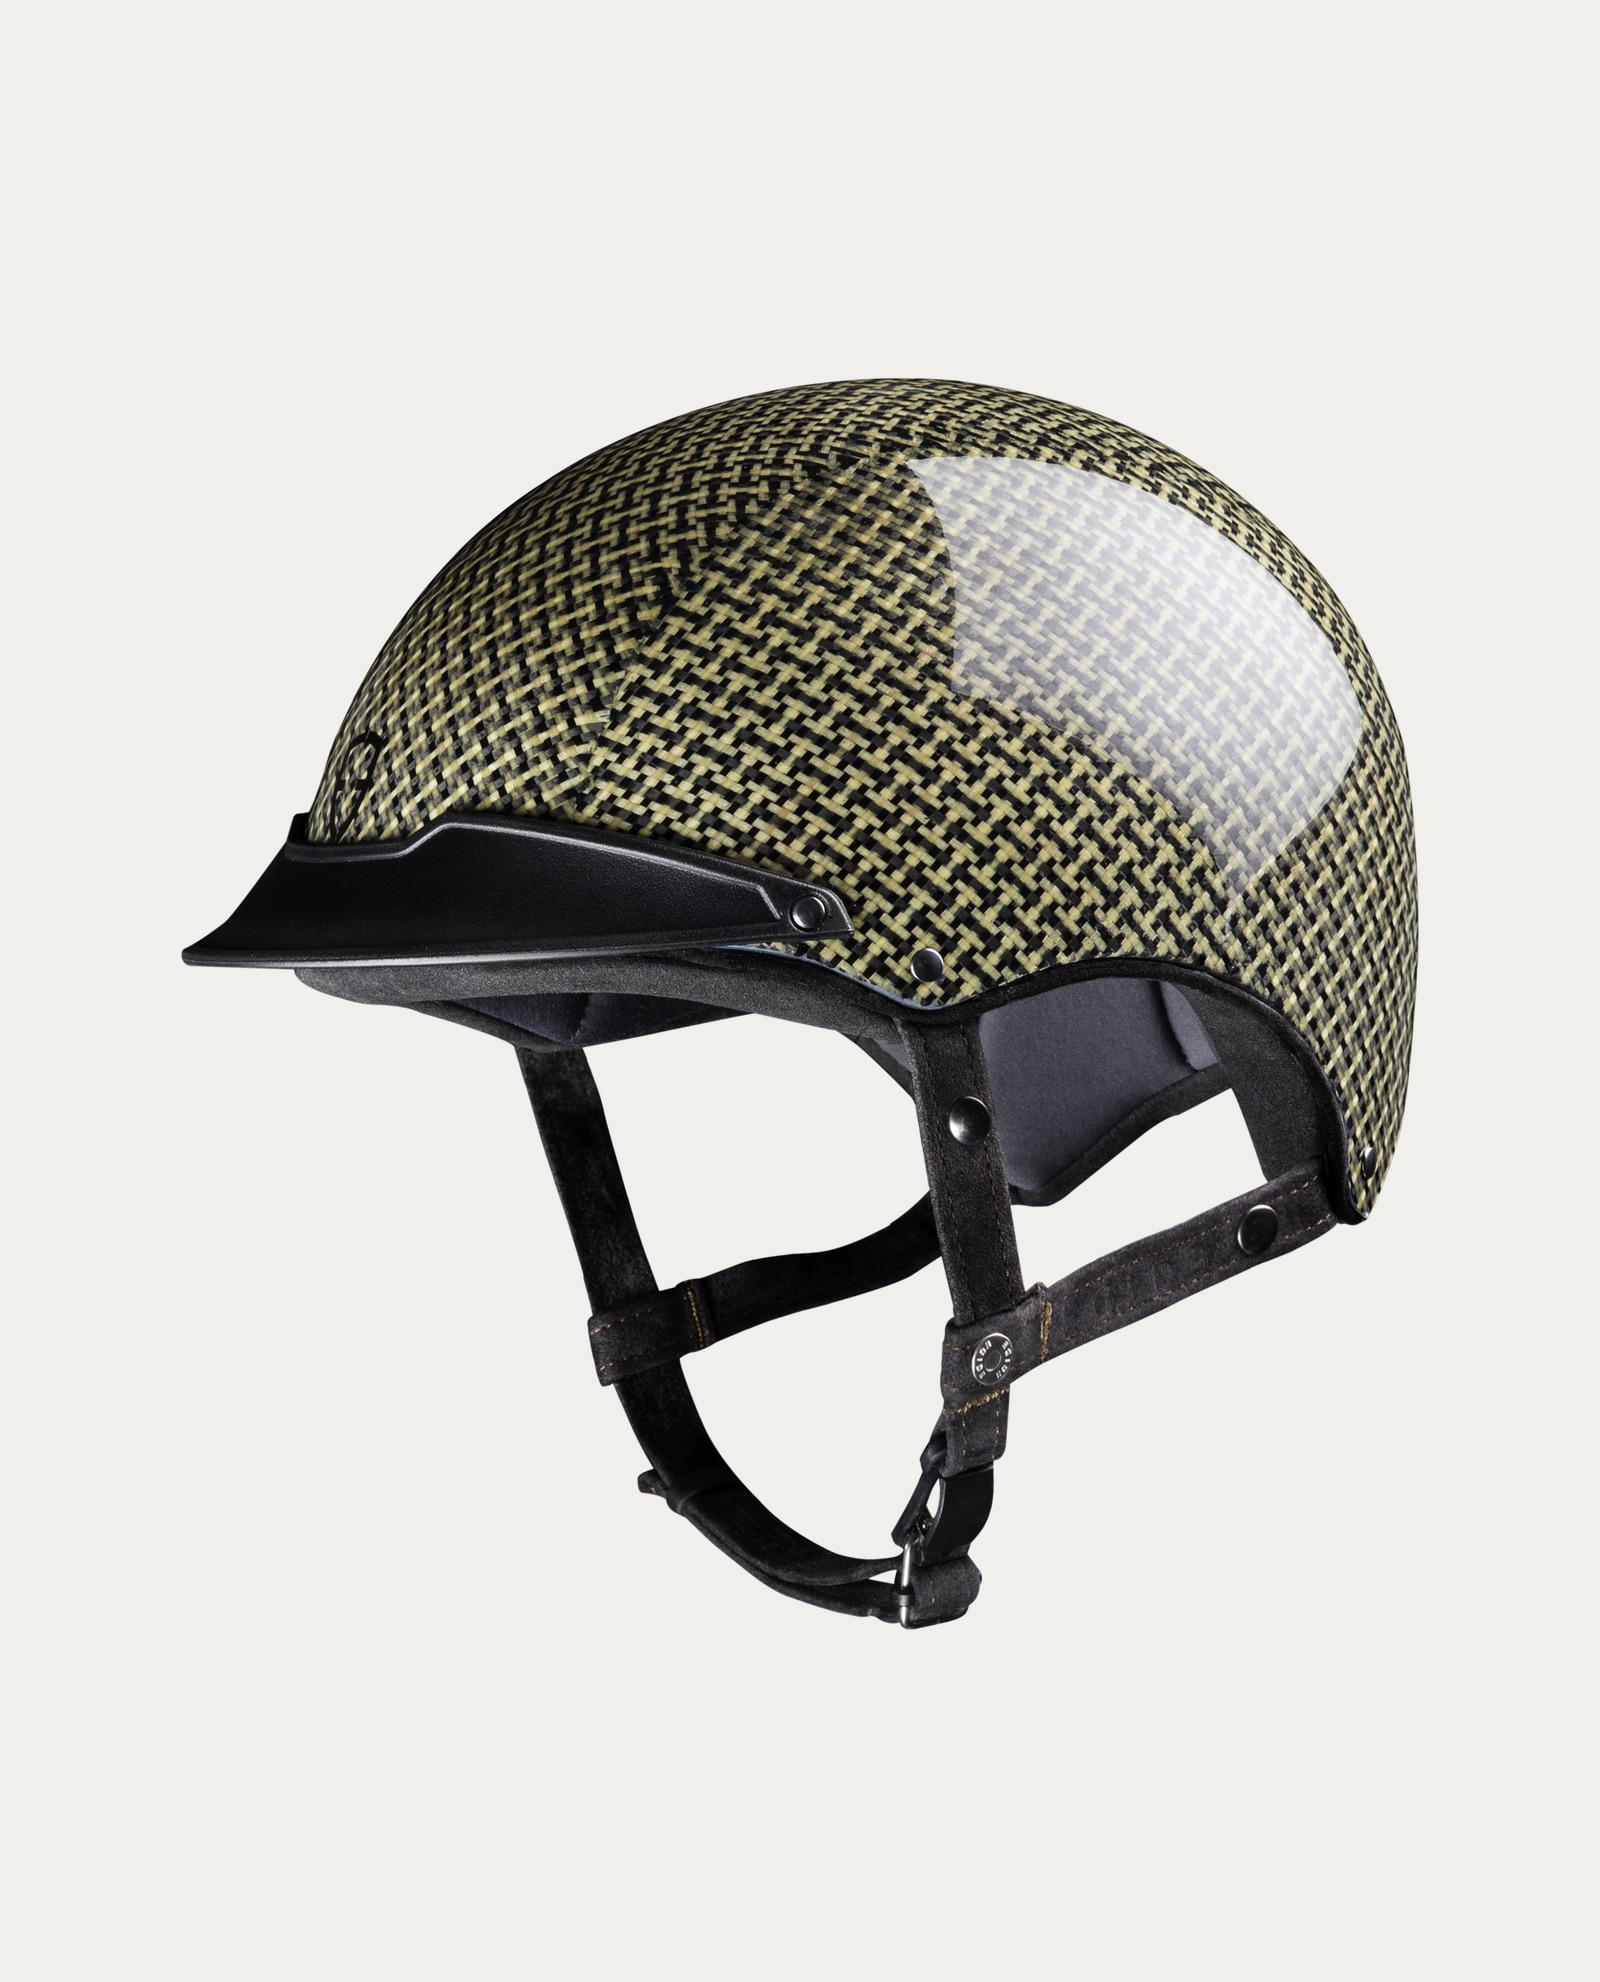 casque_velo_egide_apollo_kevlar